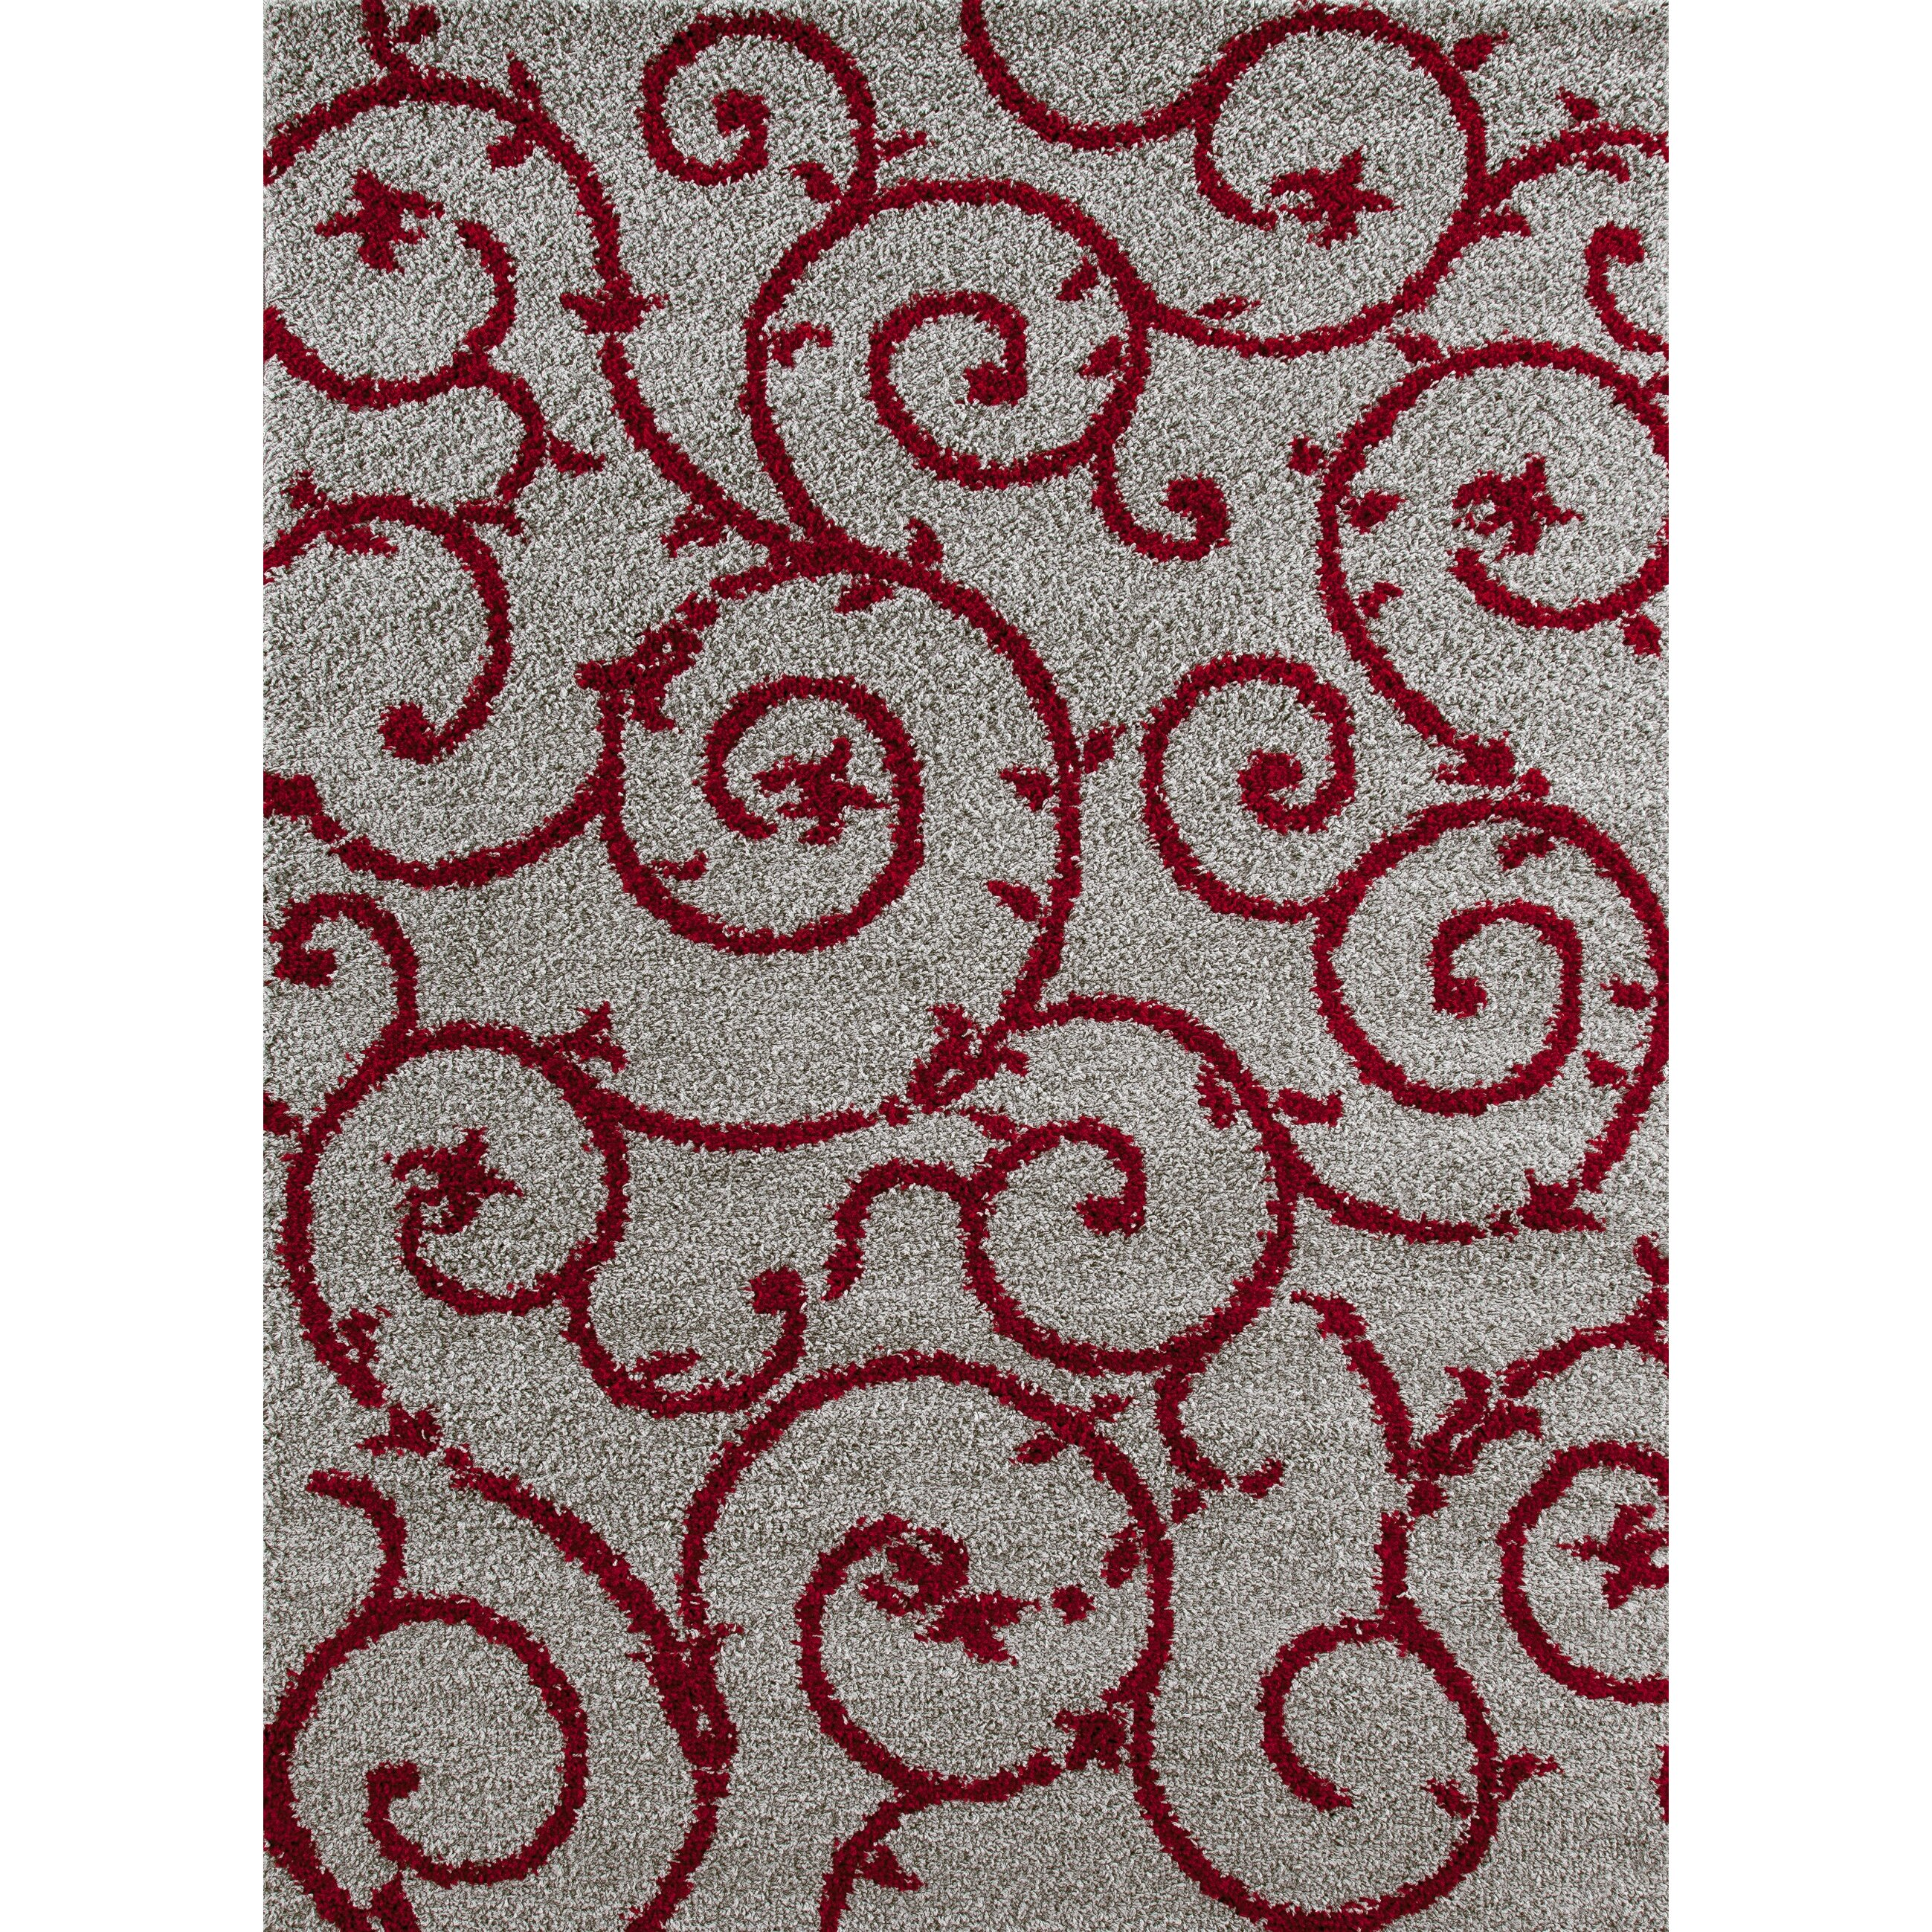 World Rug Gallery Florida RedGray Area Rug amp Reviews  : Florida Red Gray Indoor Area Rug 2323 RED GREY from www.wayfair.com size 2598 x 2598 jpeg 3384kB